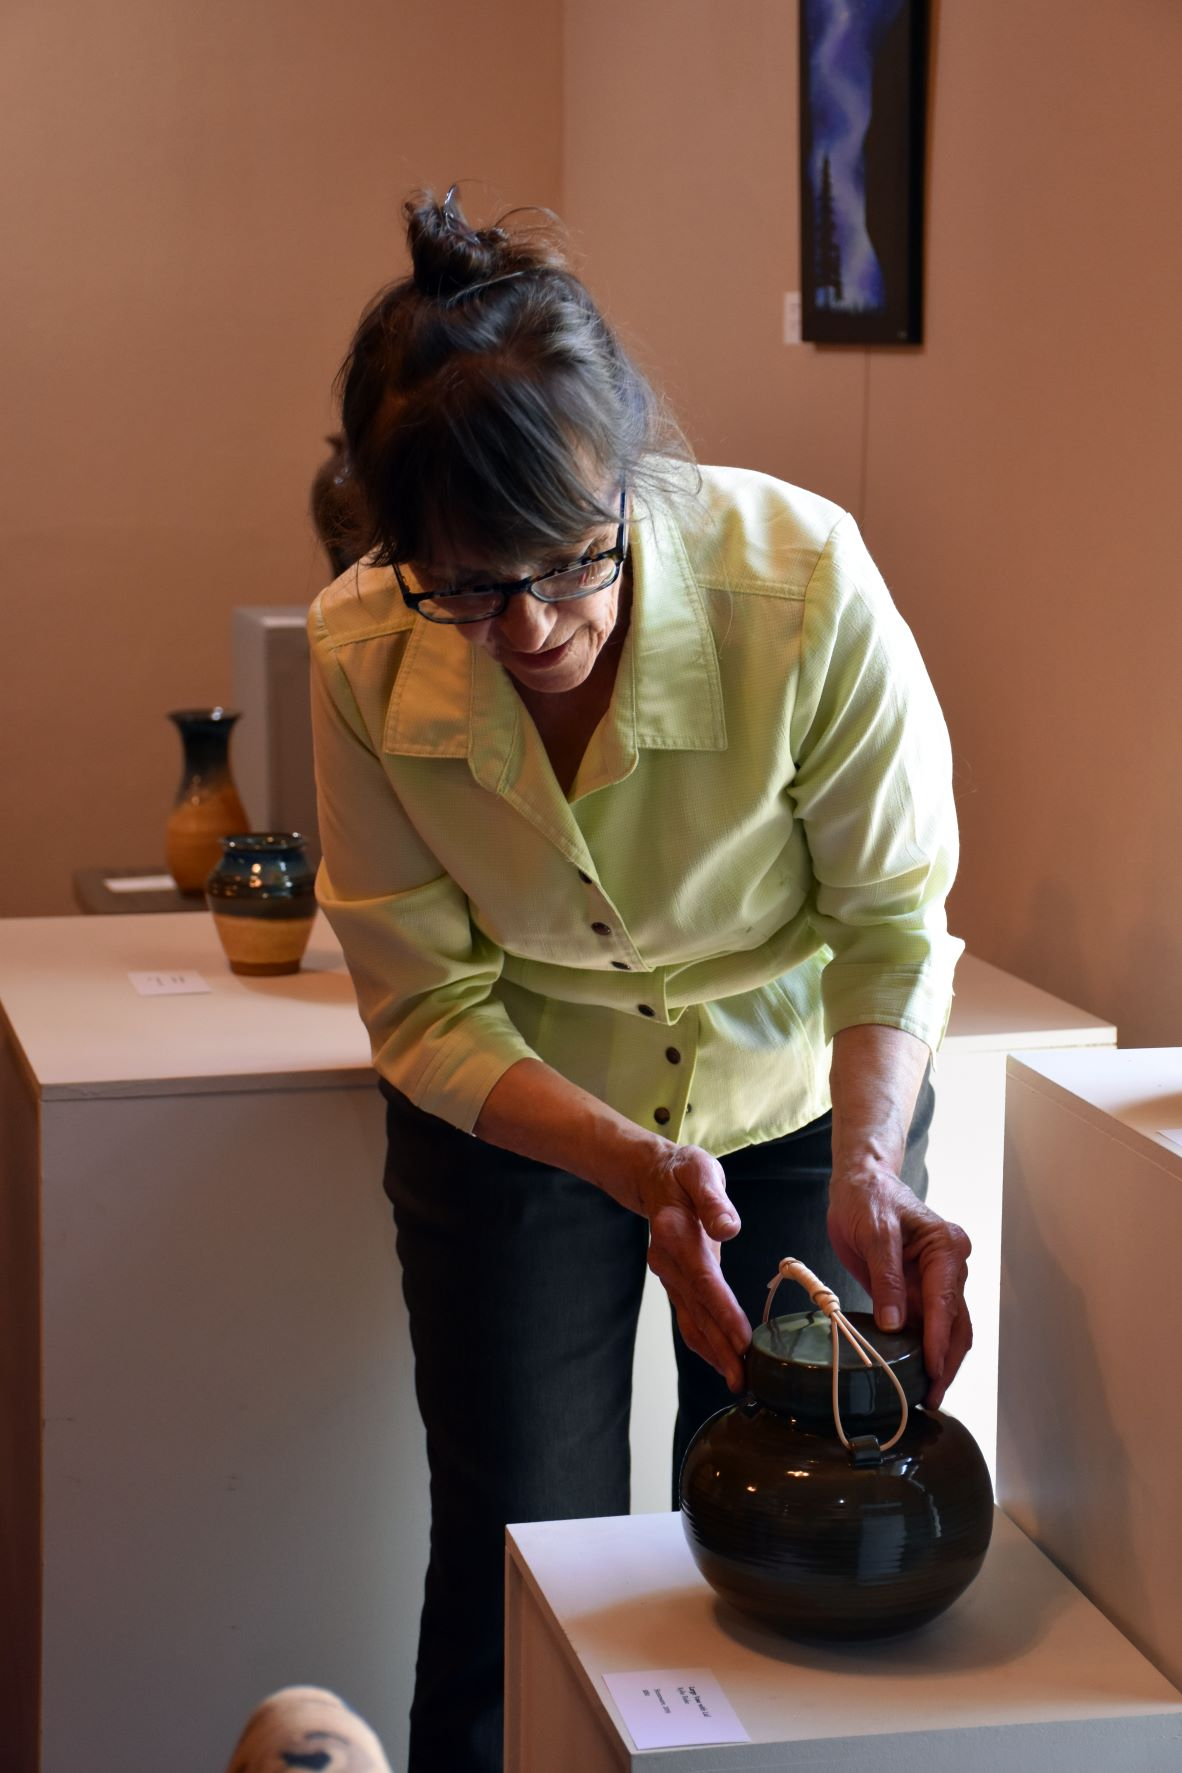 Rosemary setting up pottery exhibit at the Bird Island Cultural Centre.